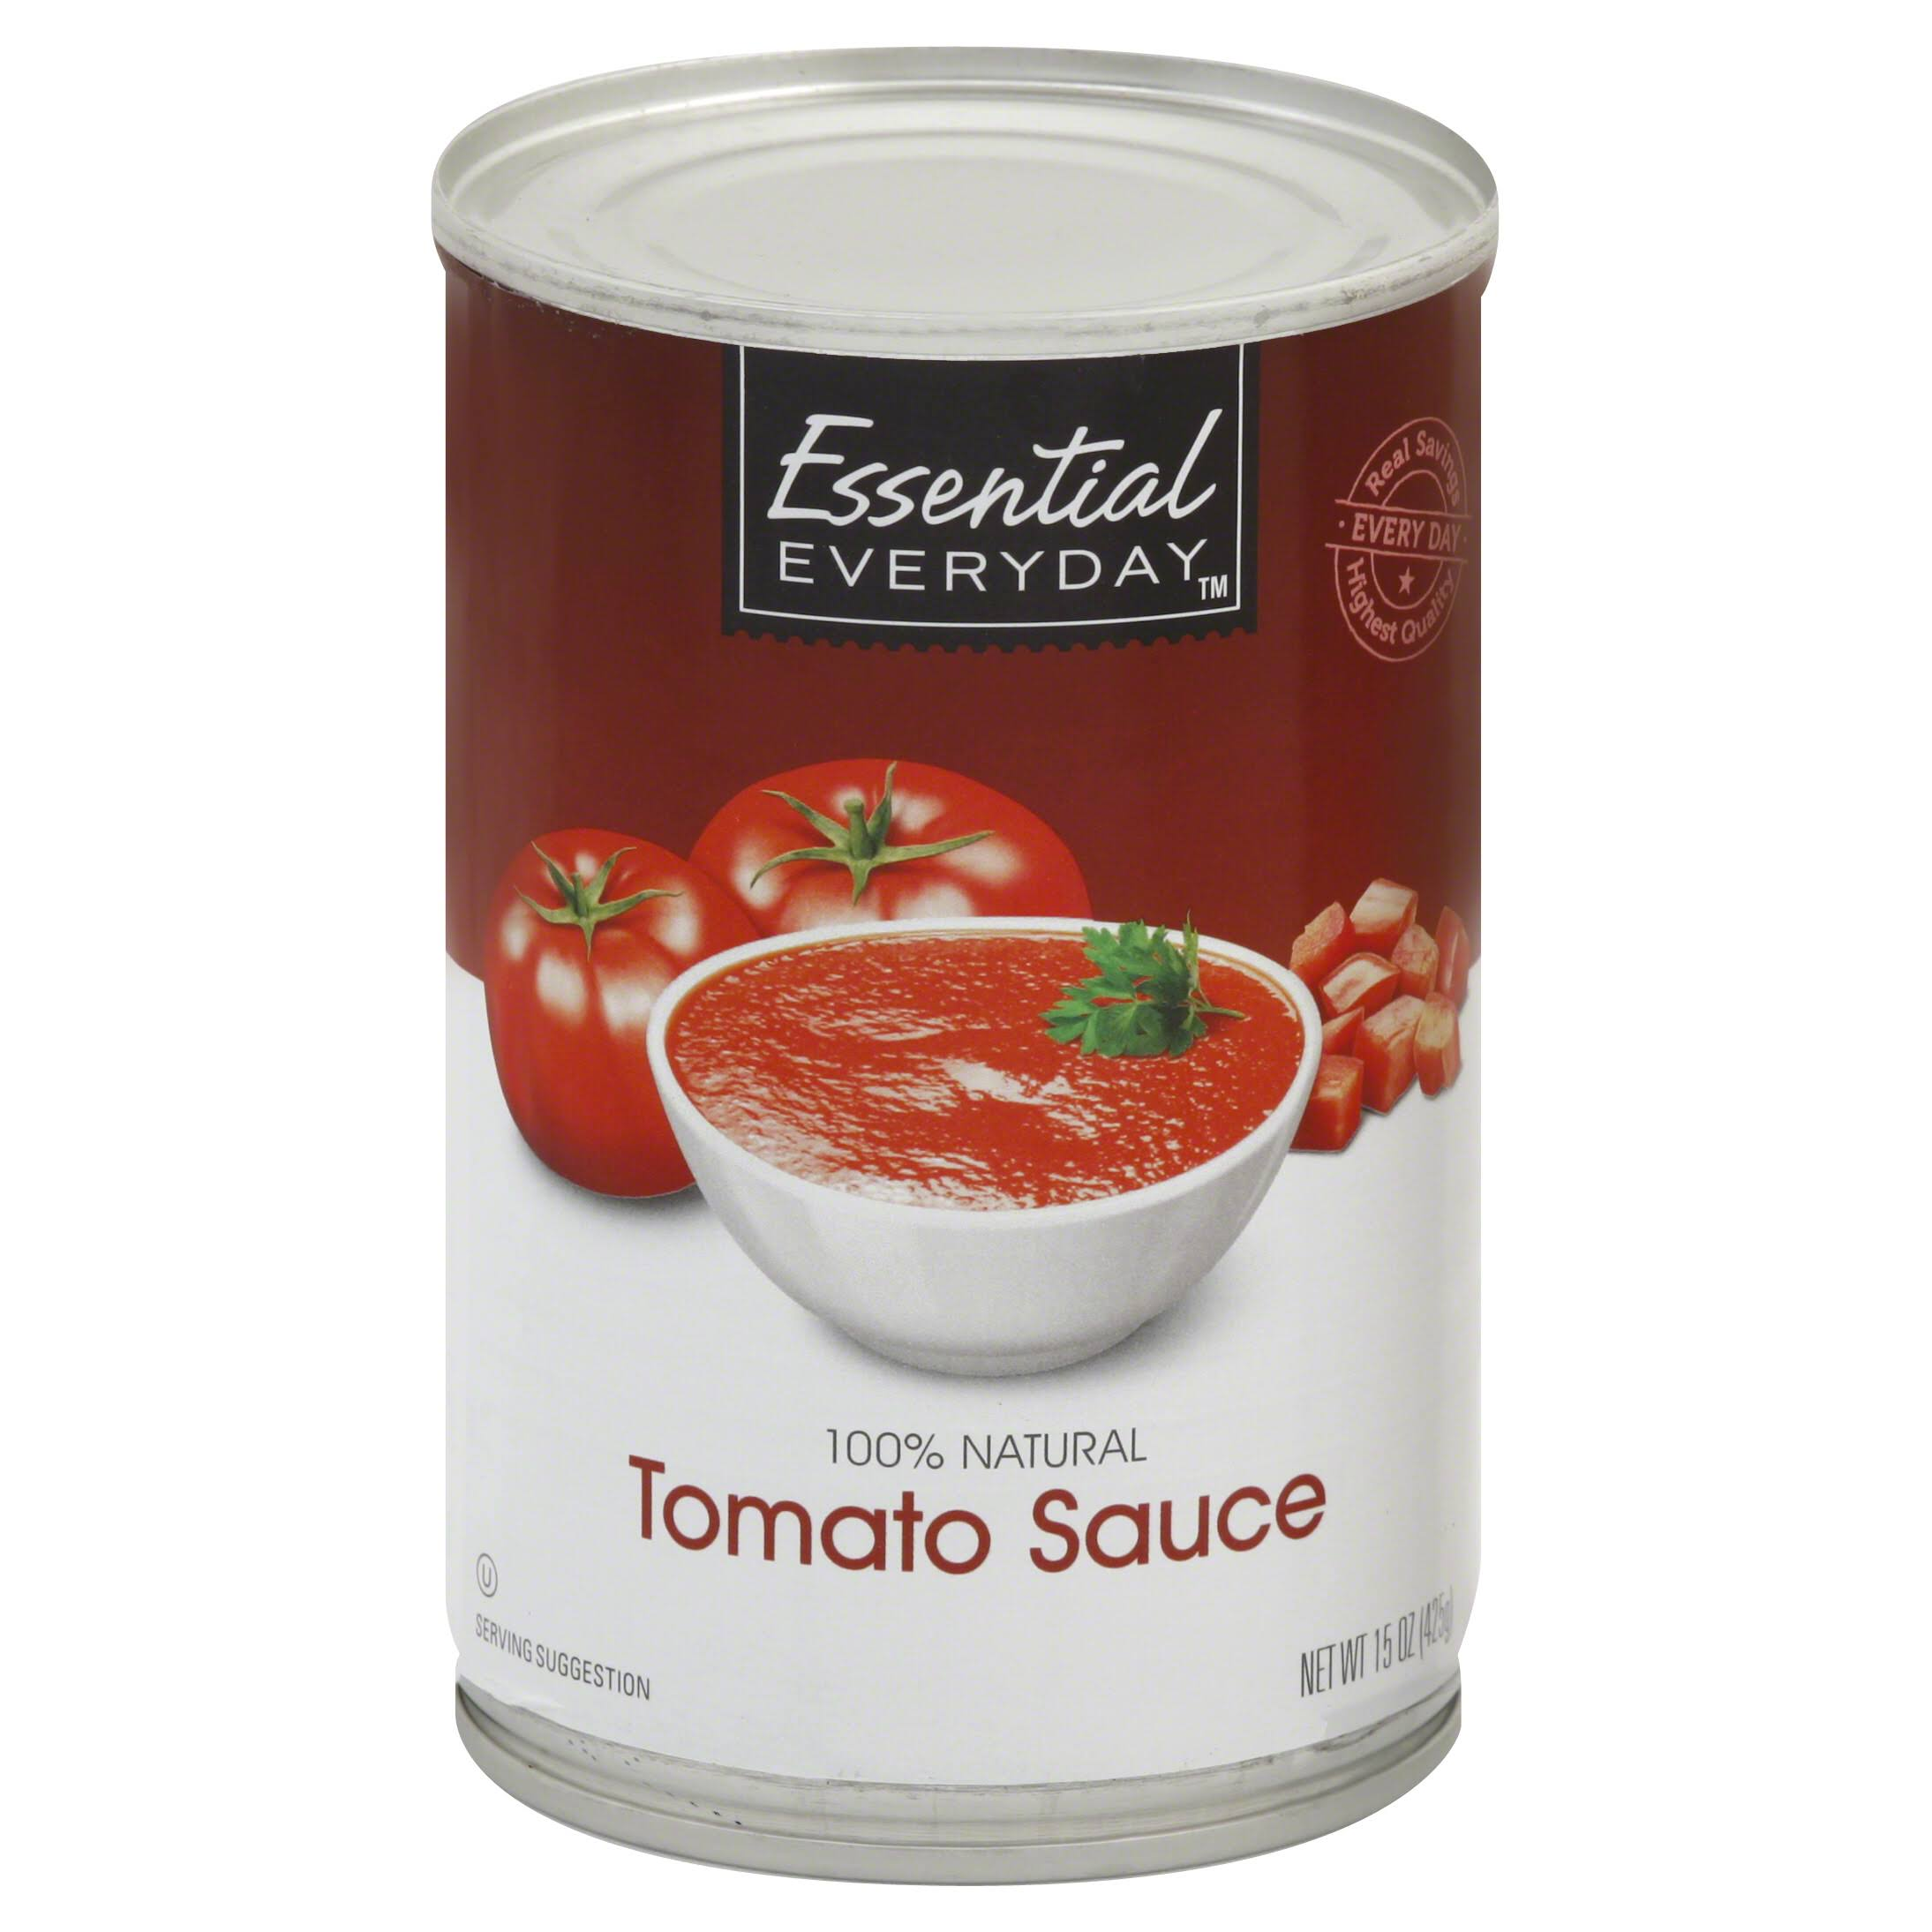 Essential Everyday Tomato Sauce - 15 oz